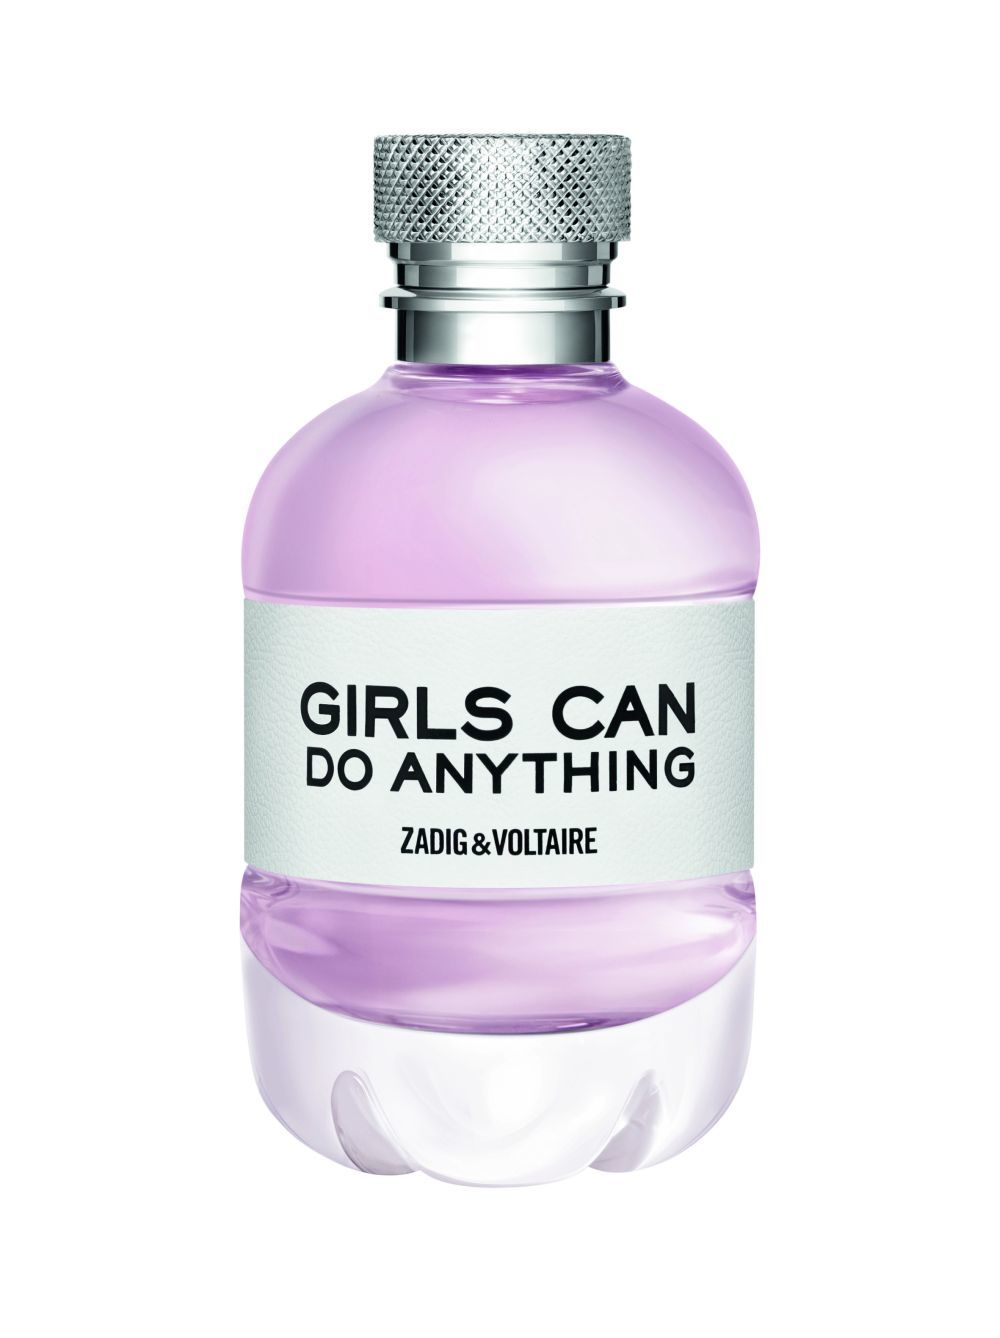 Girls Can Do Anything de Zadig & Voltaire (52 euros, 30 ml).